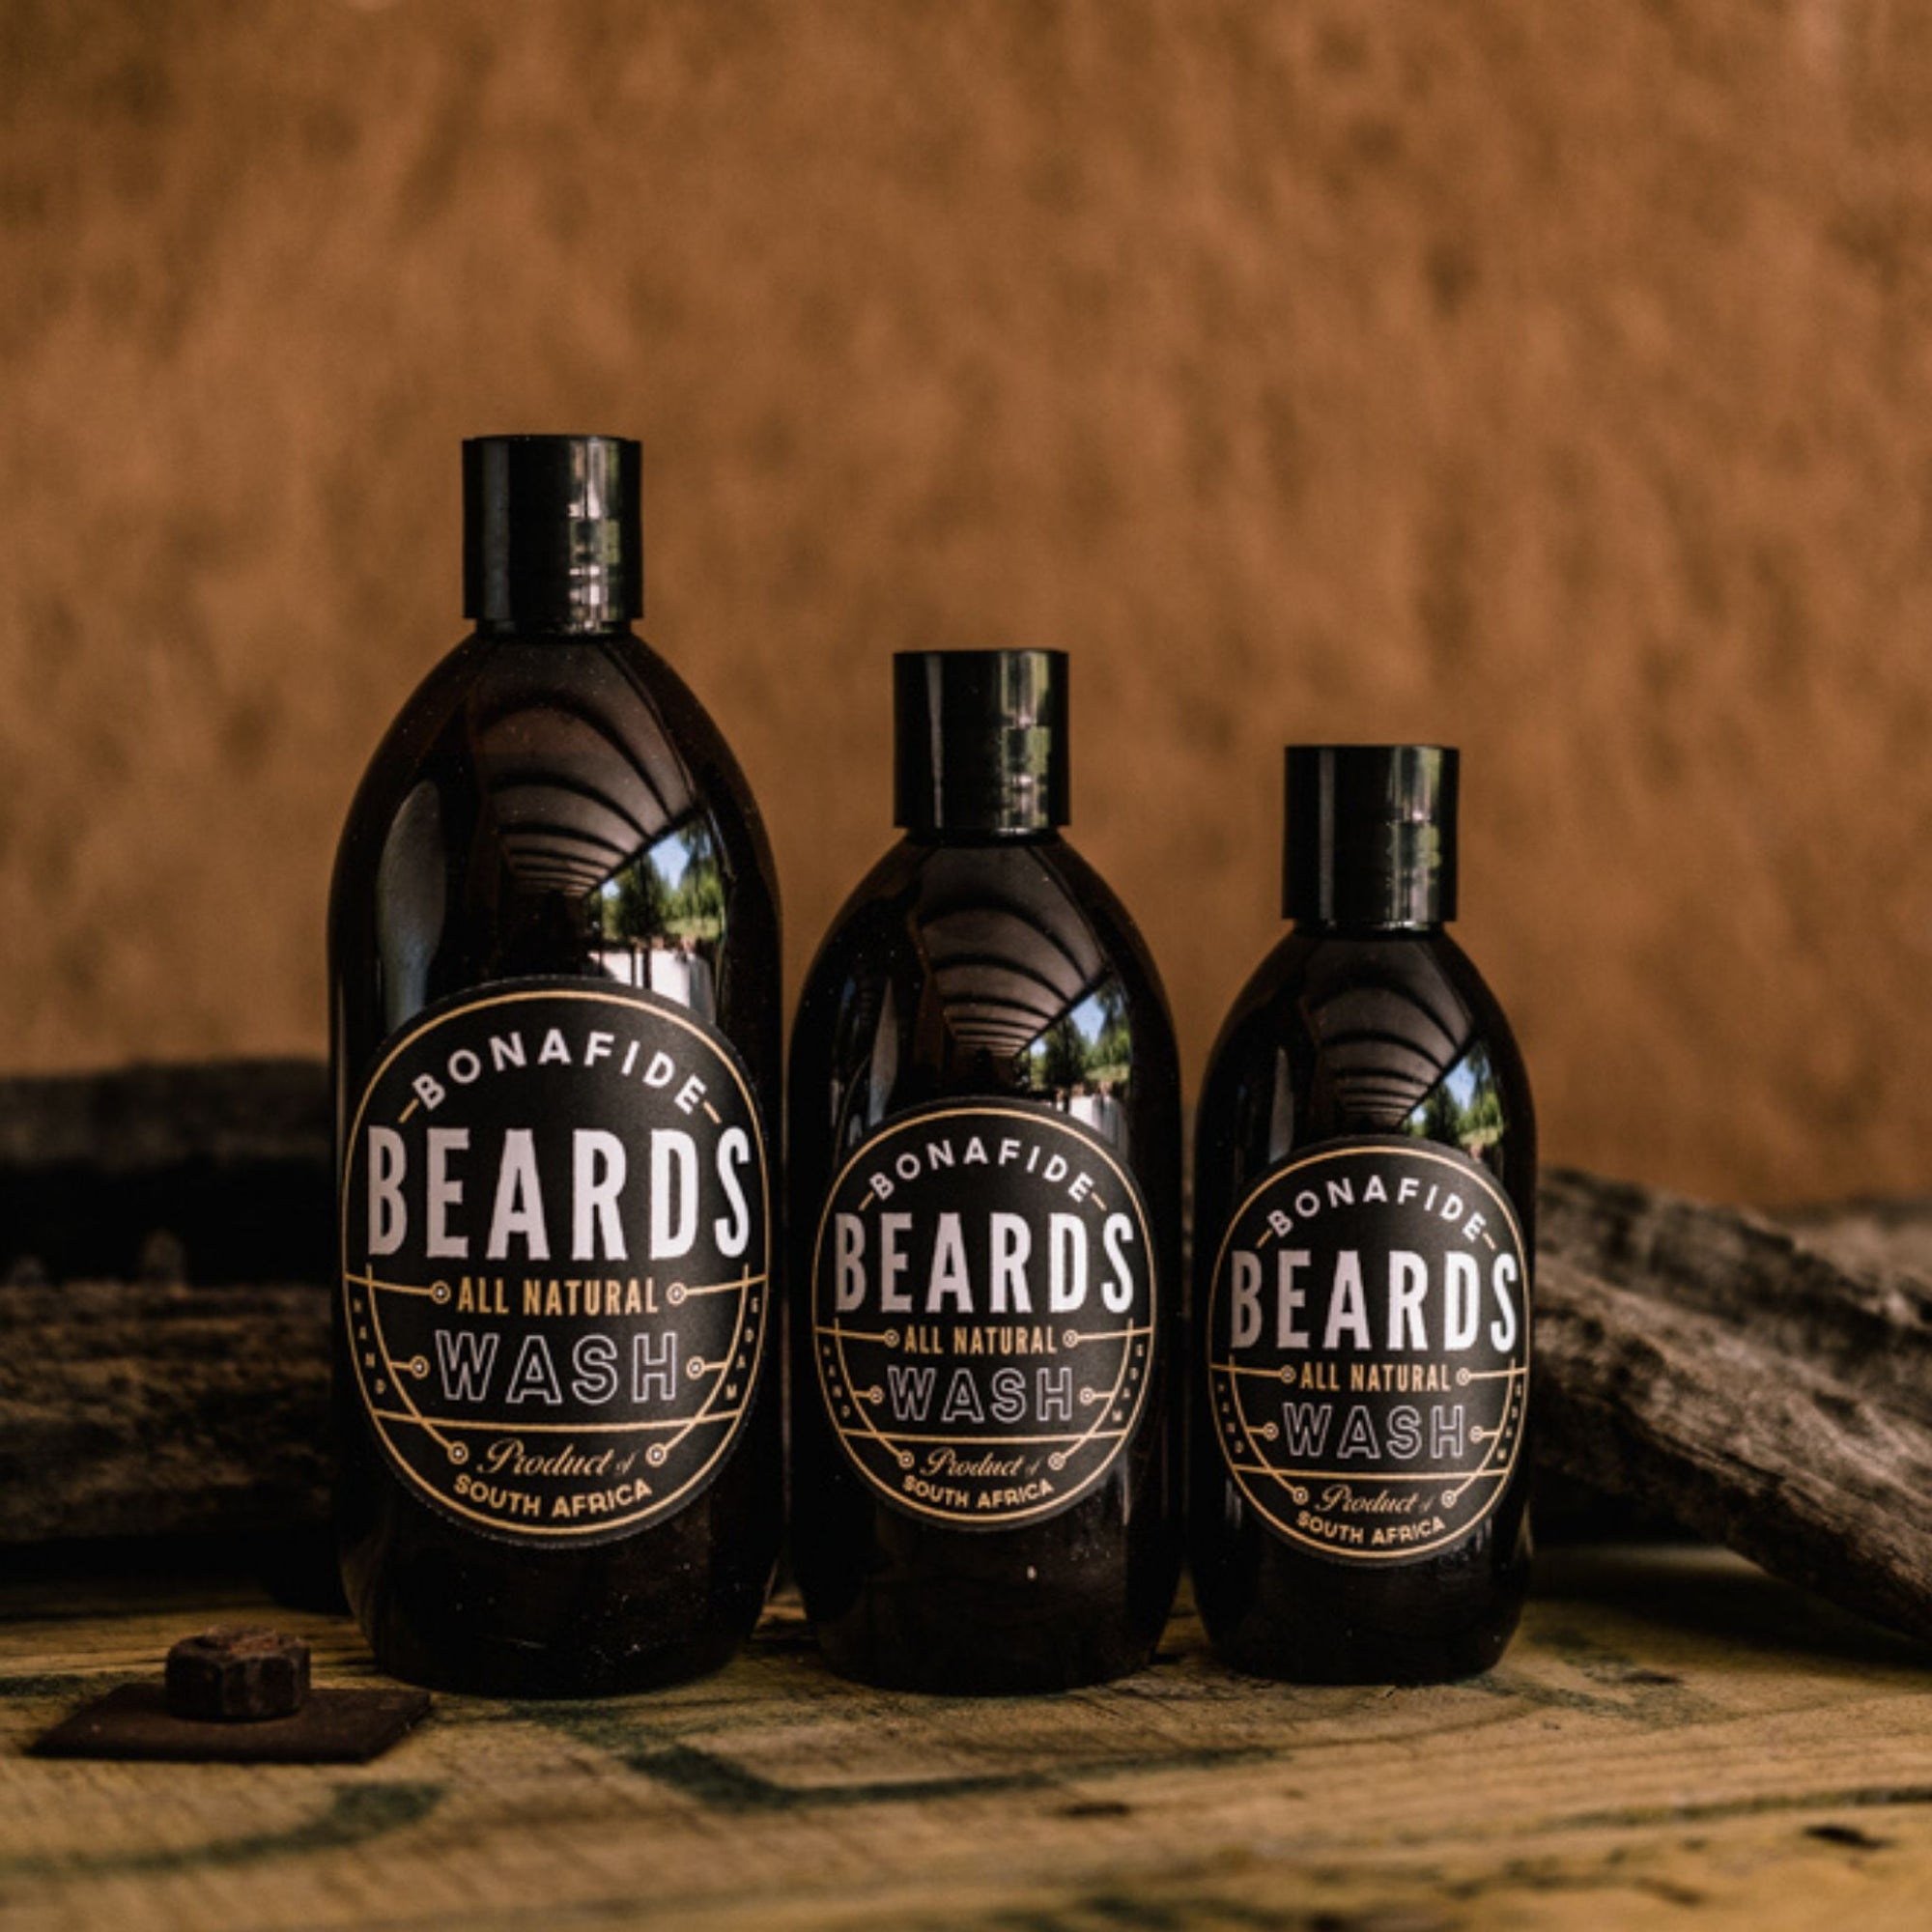 Bonafide Beards All Natural Beard Wash (200ml)